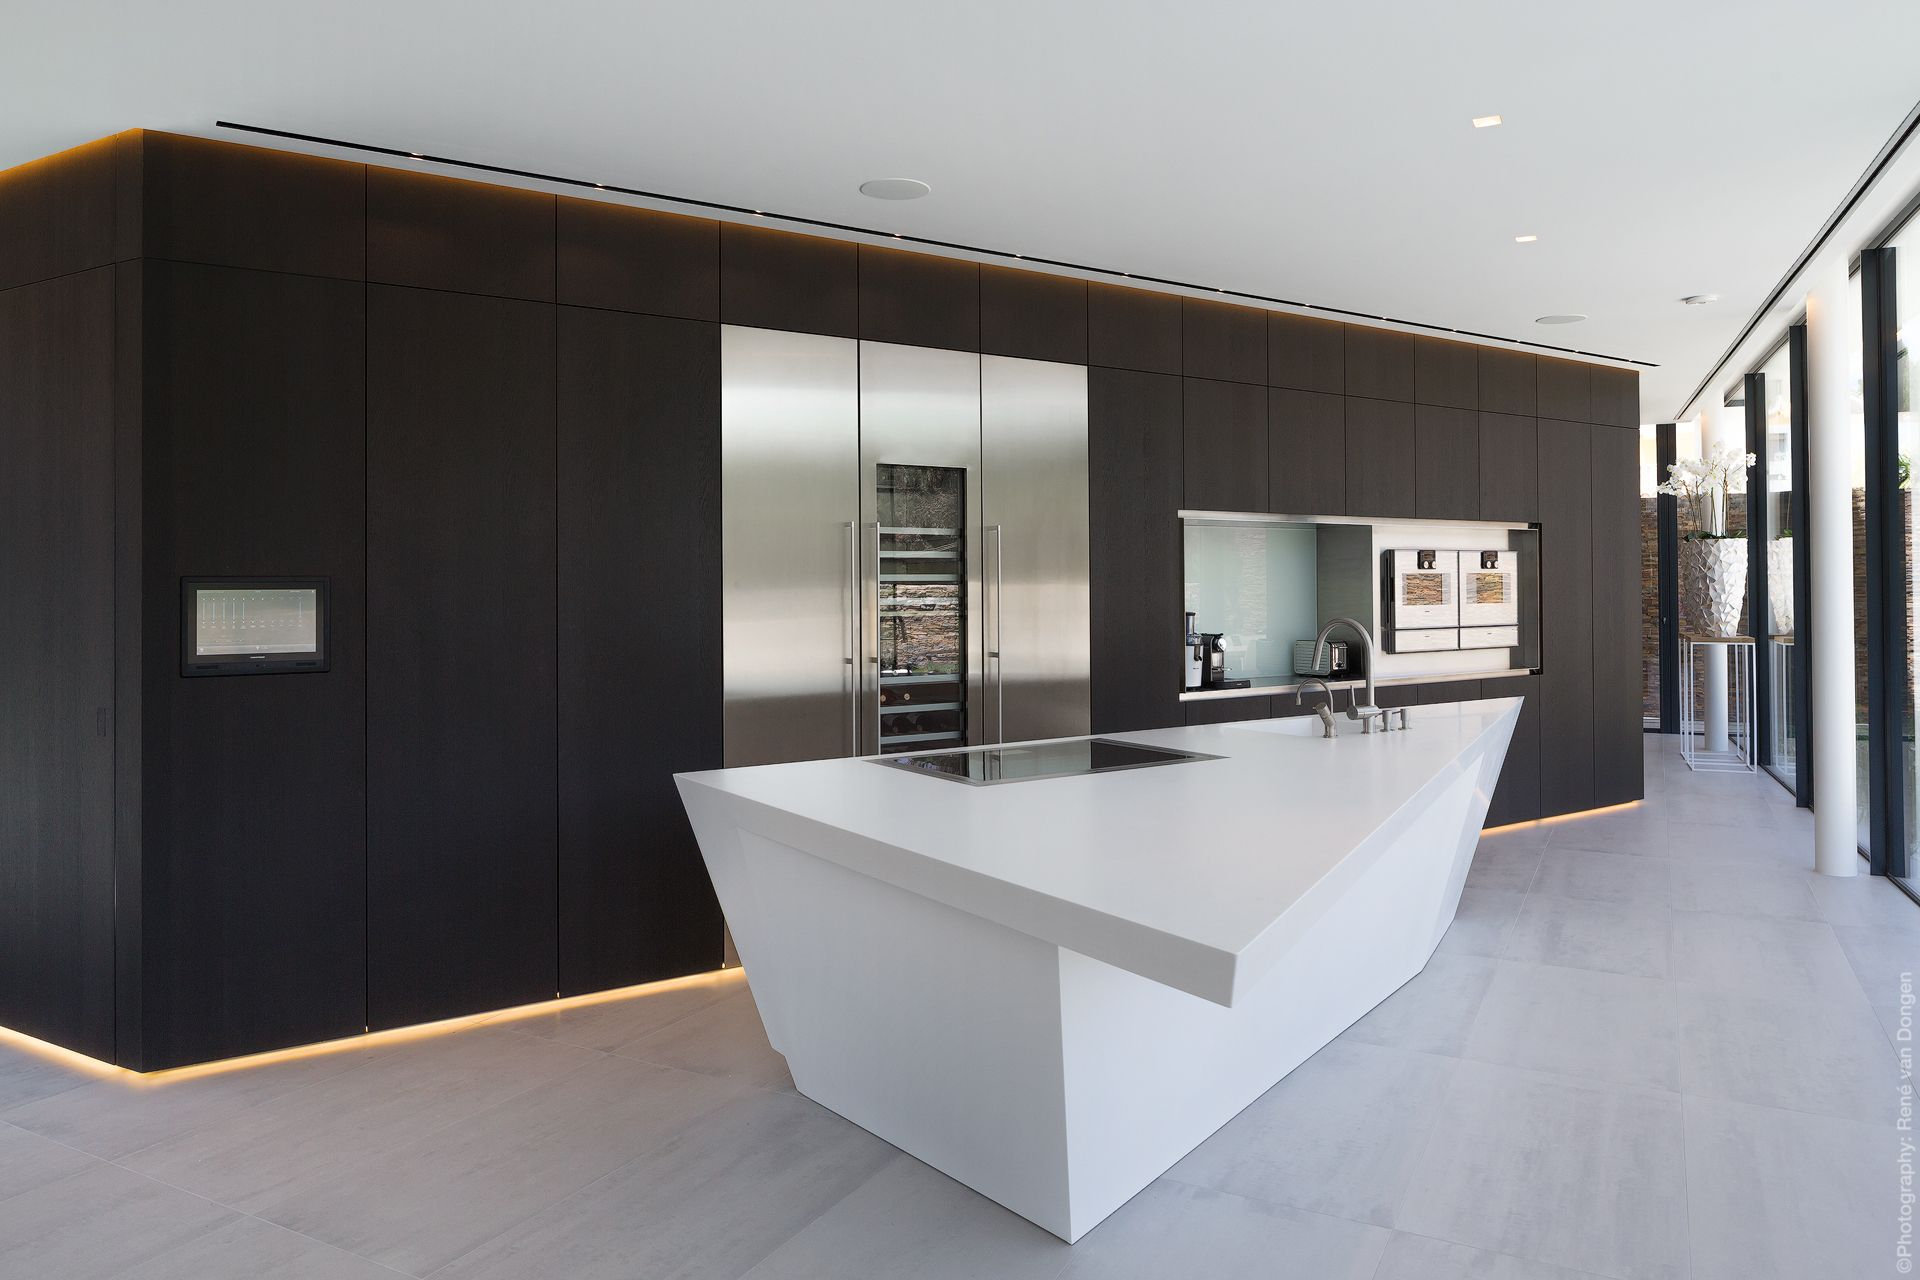 High End Kitchen Design New Culimaat  High End Kitchens  Interiors  Italiaanse Keukens En Inspiration